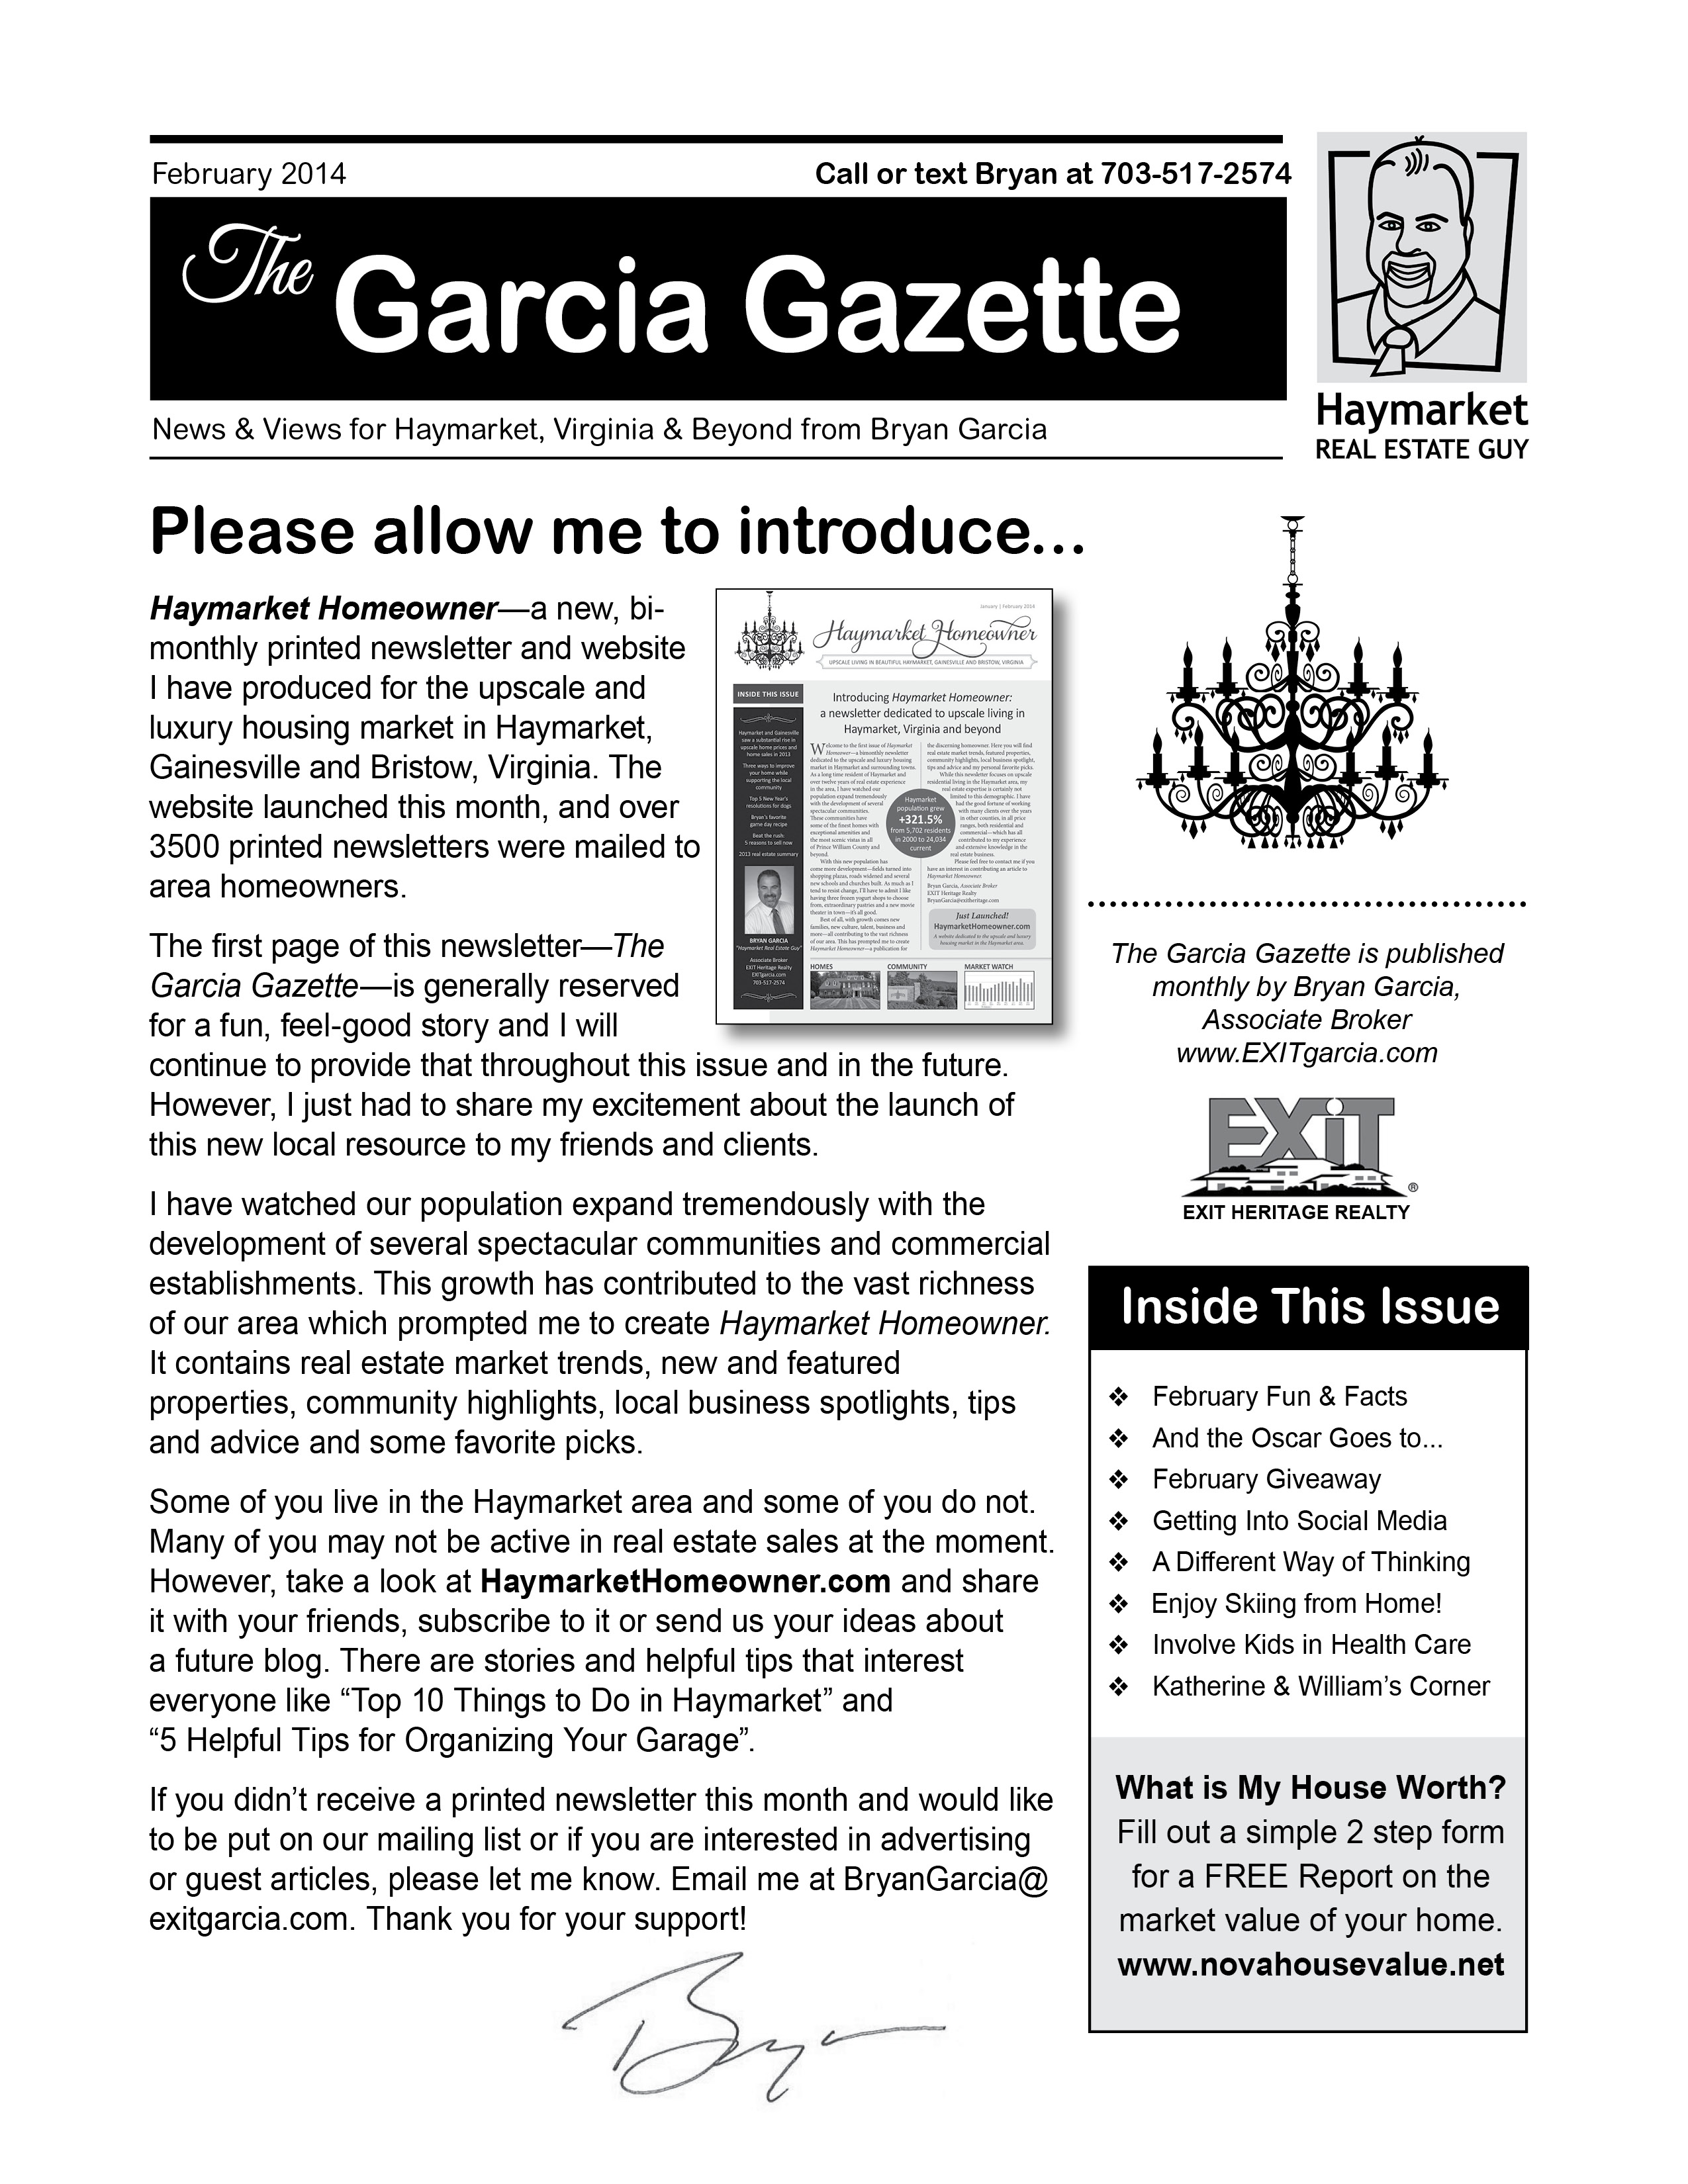 February Issue of Garcia Gazette is Out